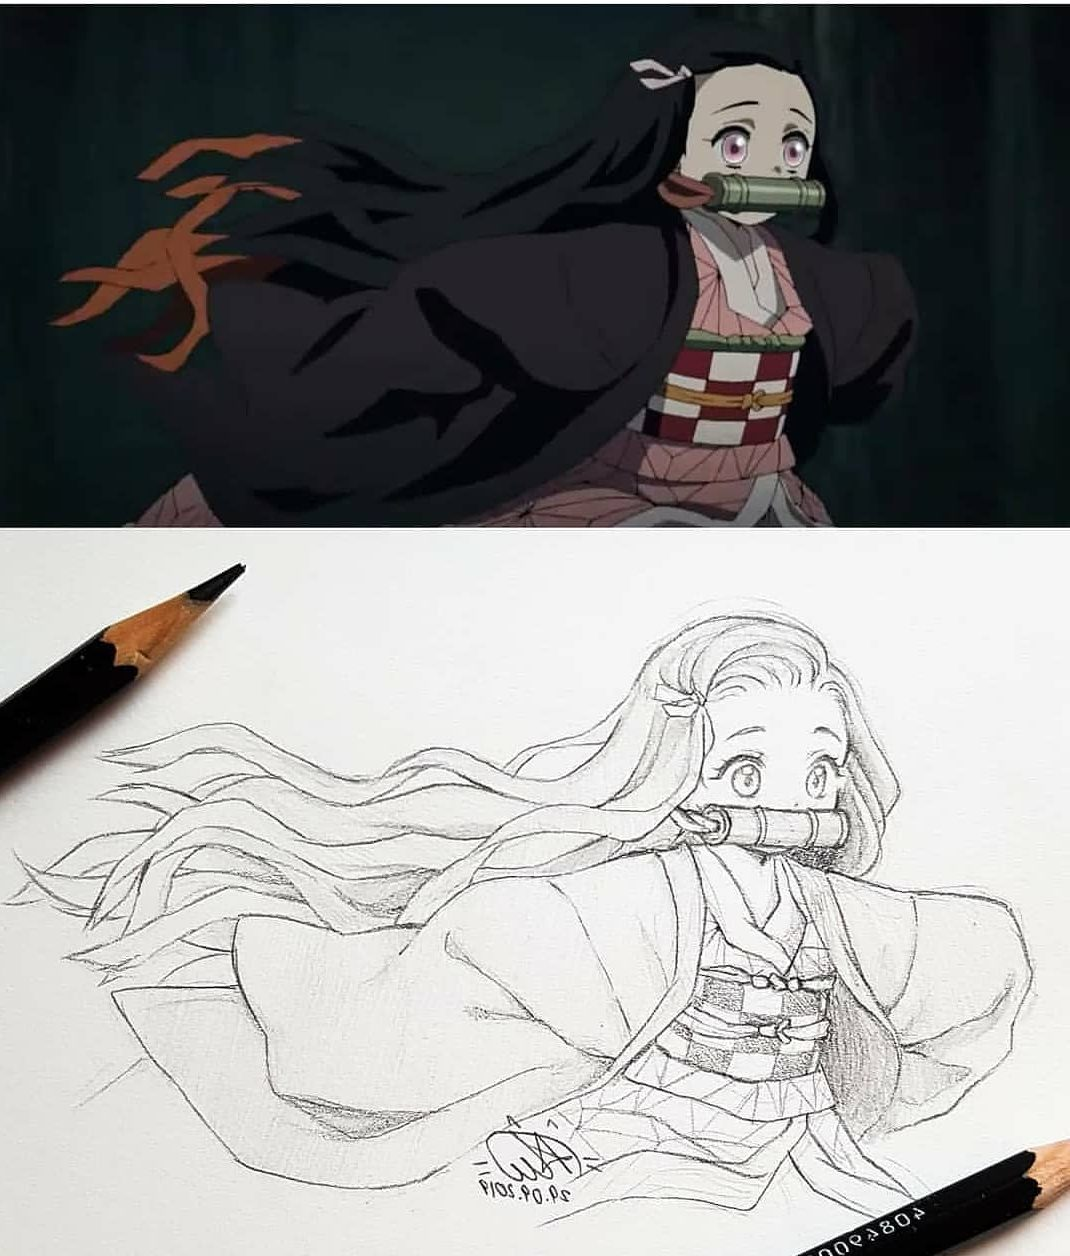 10 Creative Anime Drawing Ideas for Beginners